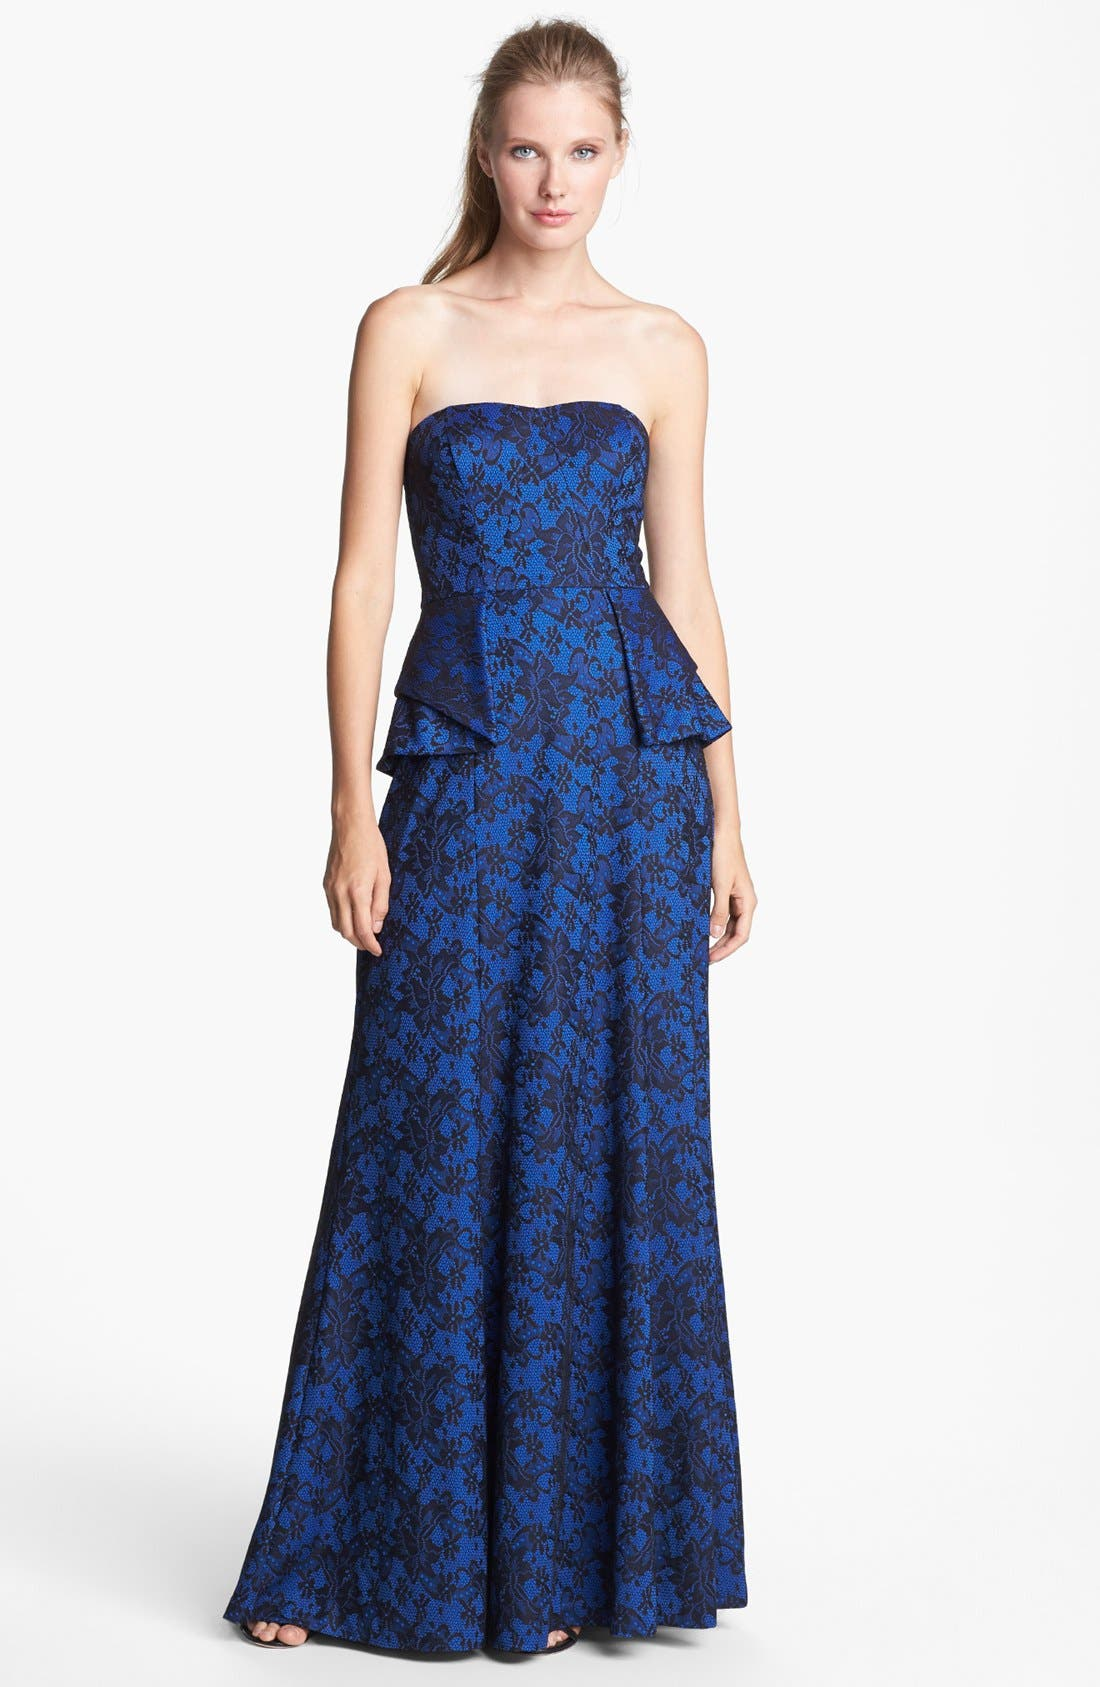 Alternate Image 1 Selected - Jessica Simpson Bonded Lace Peplum Gown